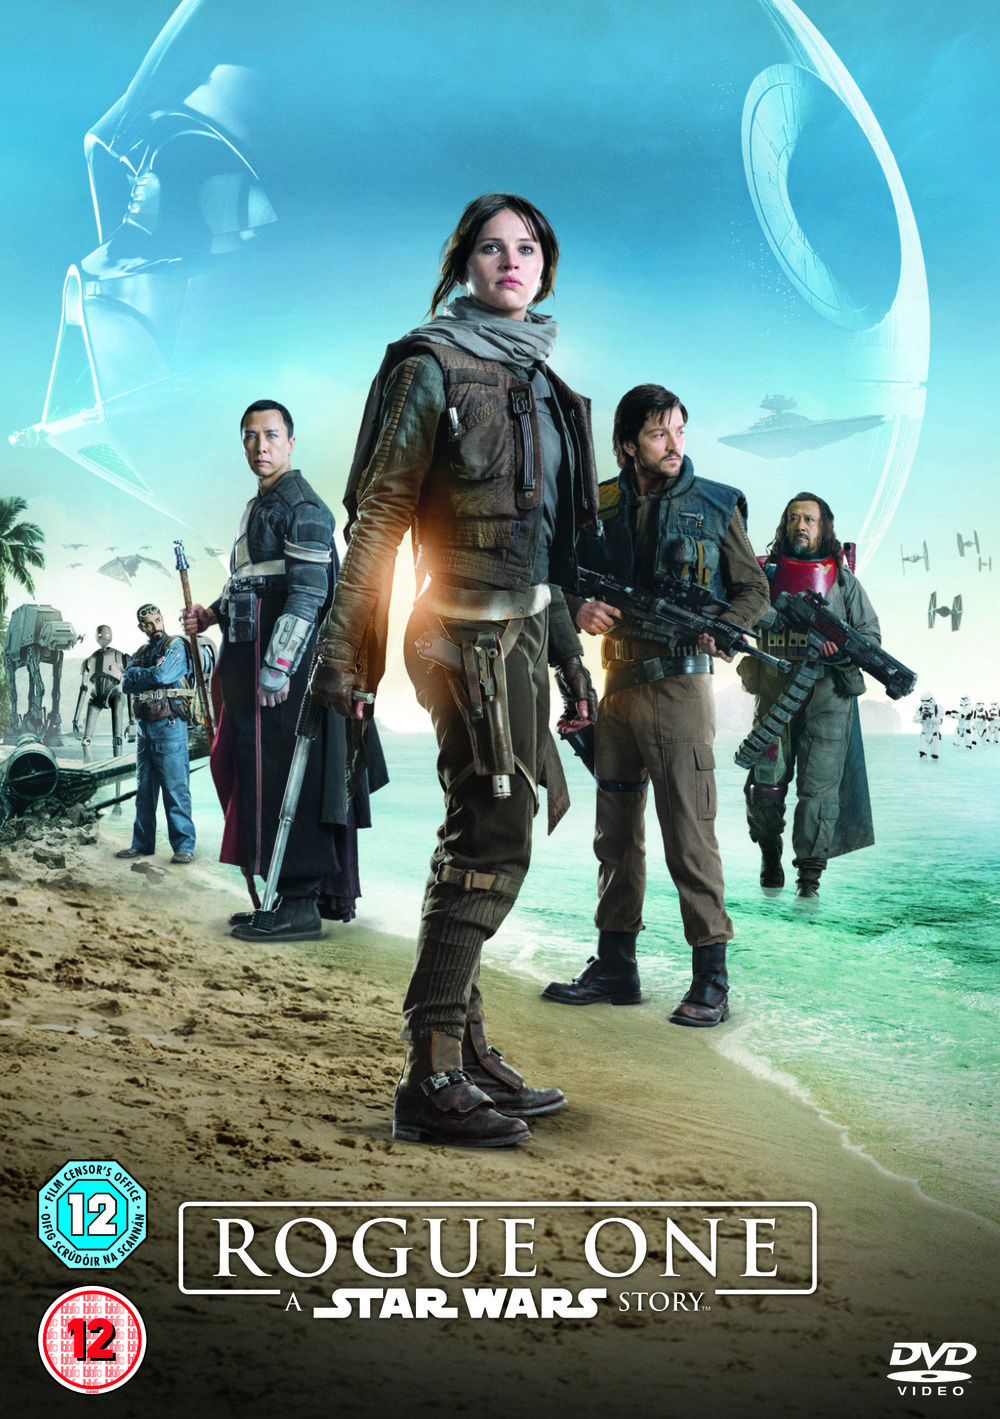 Rogue One: A Star Wars Story(12A) - ©2017 & TM Lucasfilm Ltd.Date: Friday 9 JuneScreening: 7:30pm